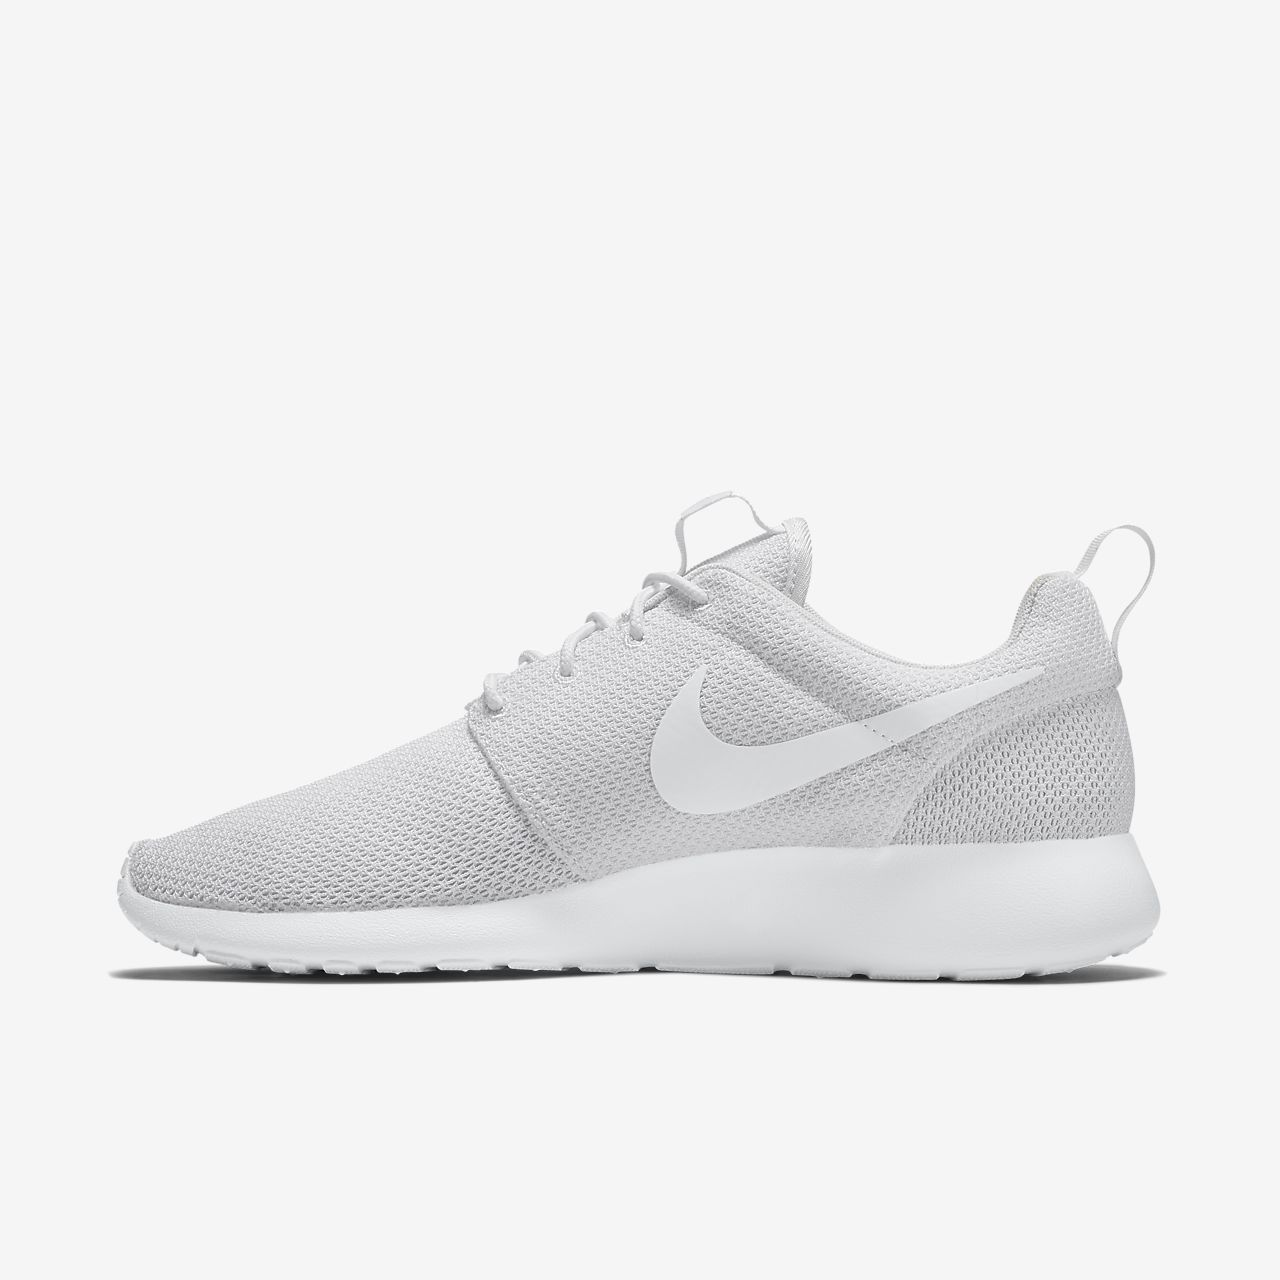 c15edc20 All White Mens Nike Shoes : Buy Nike Sneakers & Shoes | Air force 1 ...